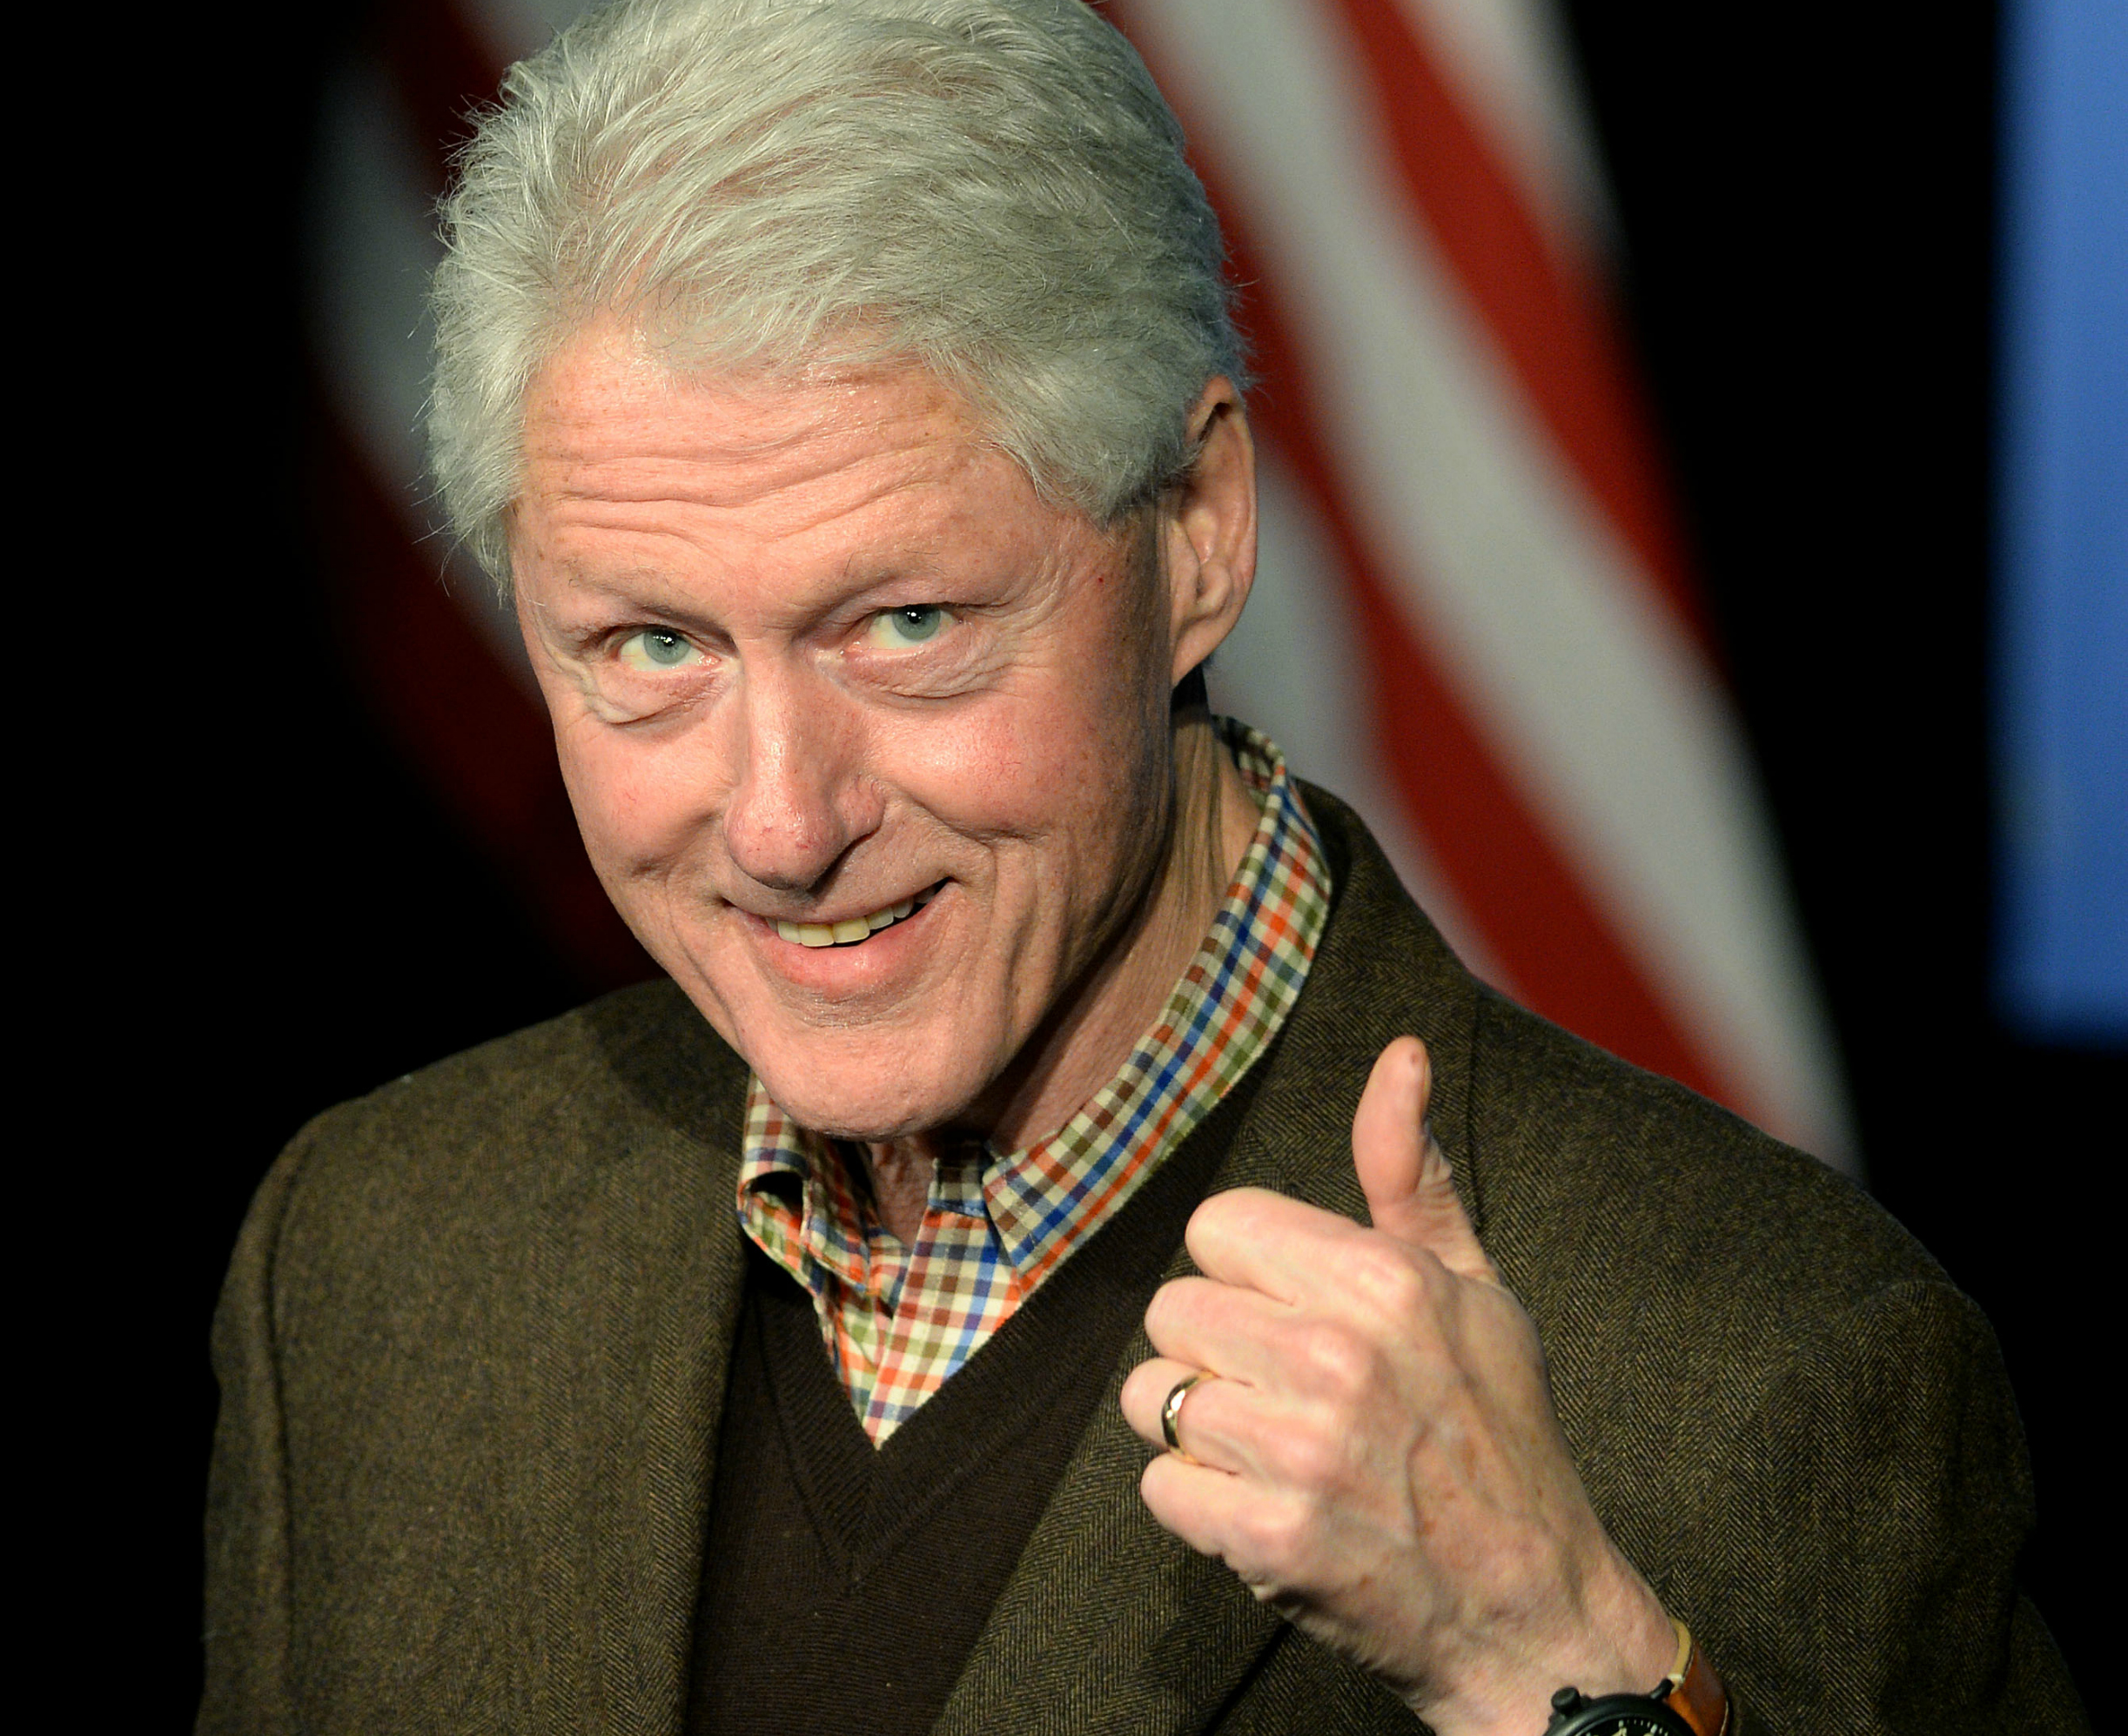 This Does Nothing To Dispel The Bill Clinton As A Creeper